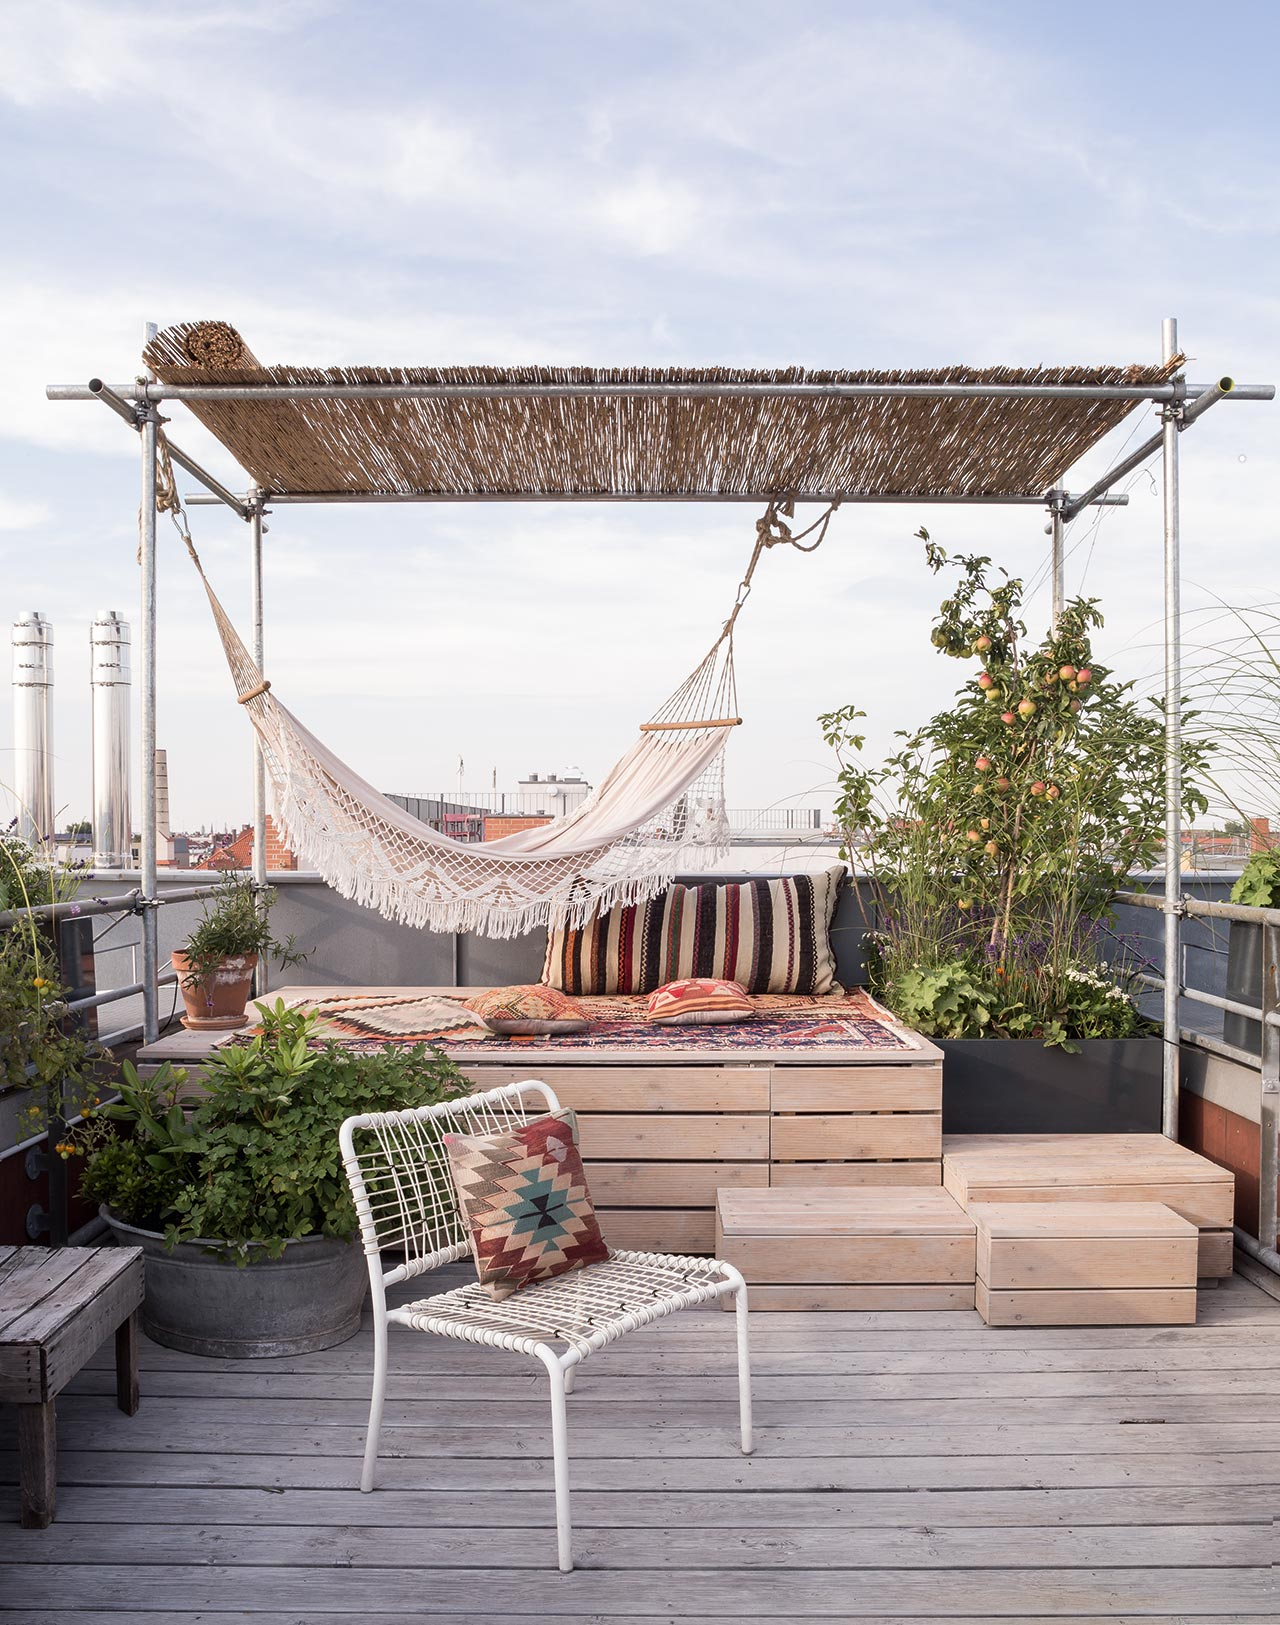 The other terrace shows off a hammock, a pallet space and much greenery